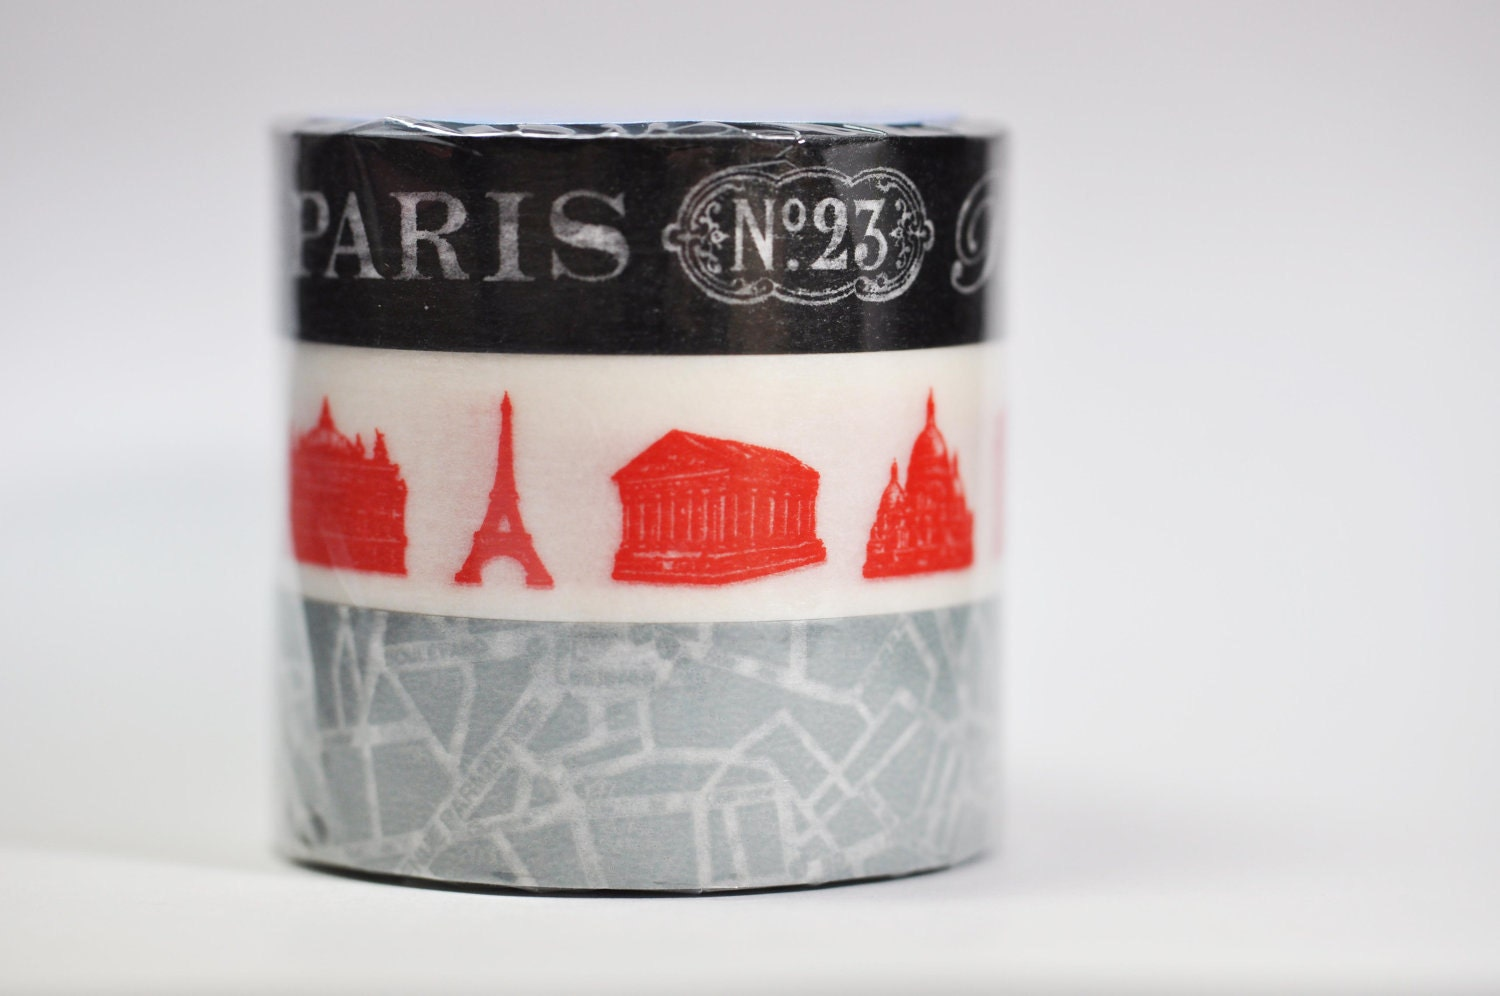 Paris Travel Washi Tape - Black and Grey